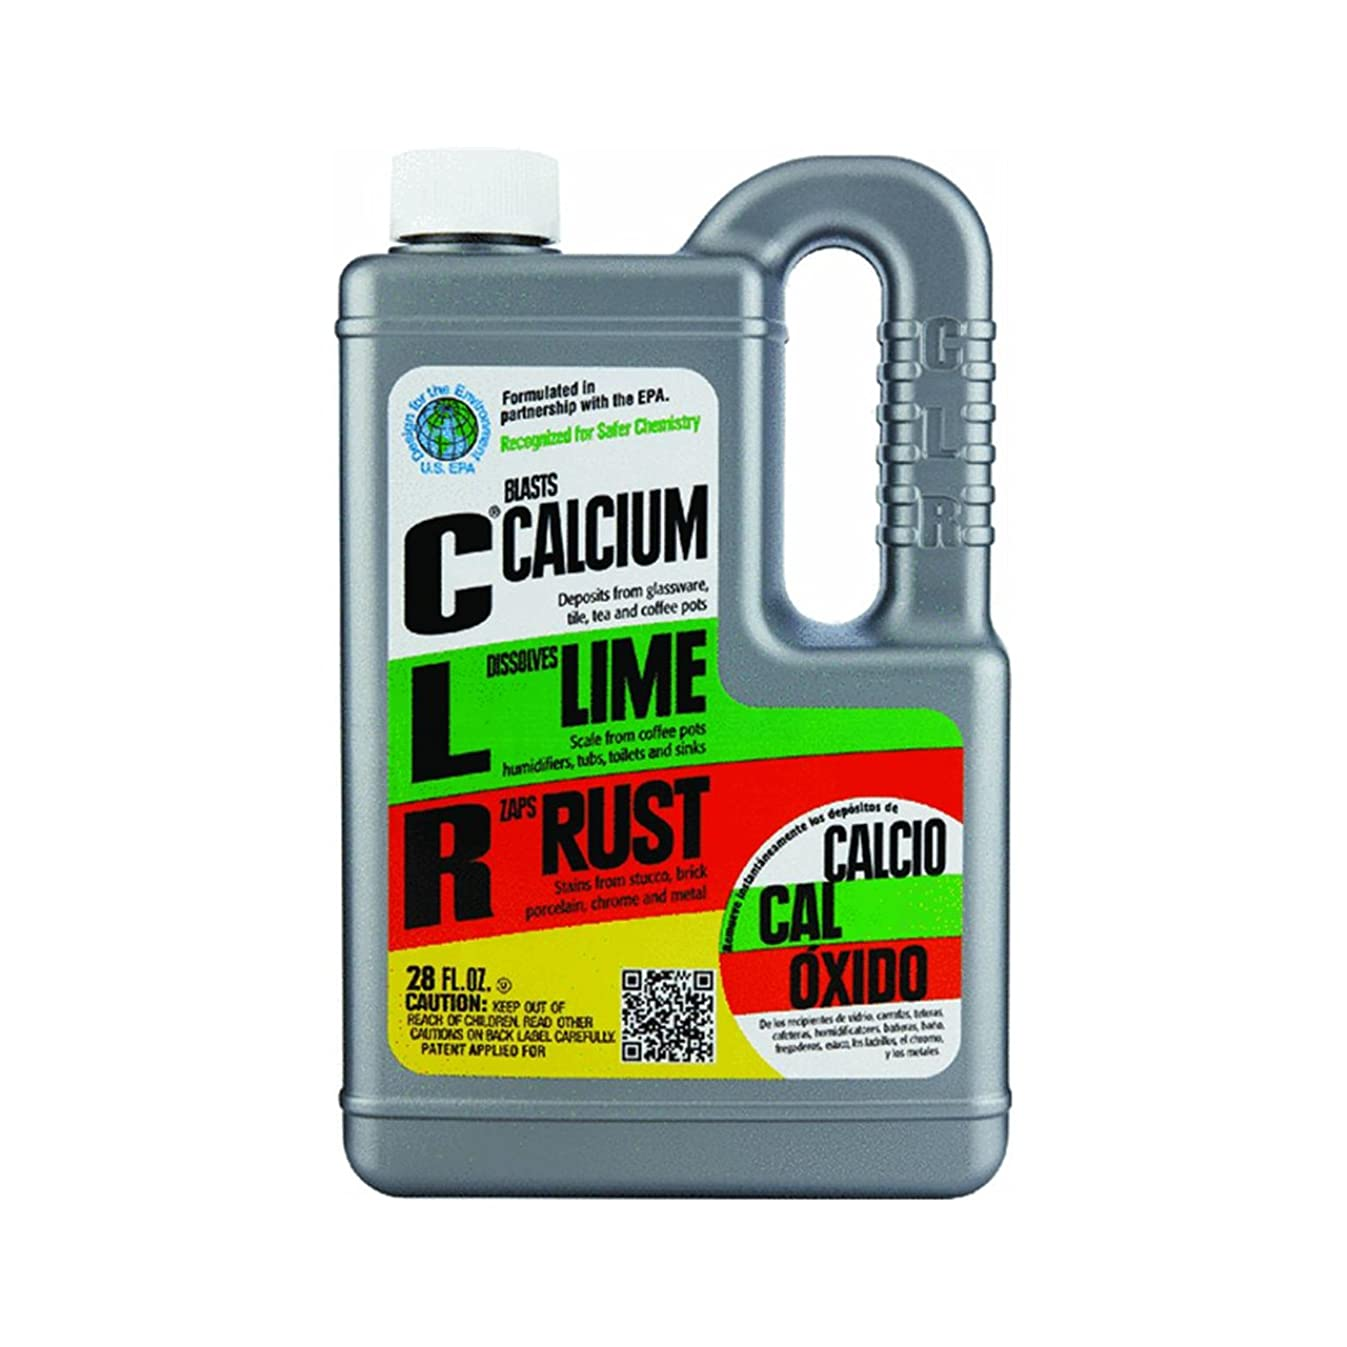 CLR Calcium, Lime, and Rust Remover 28 oz - 2 Pack